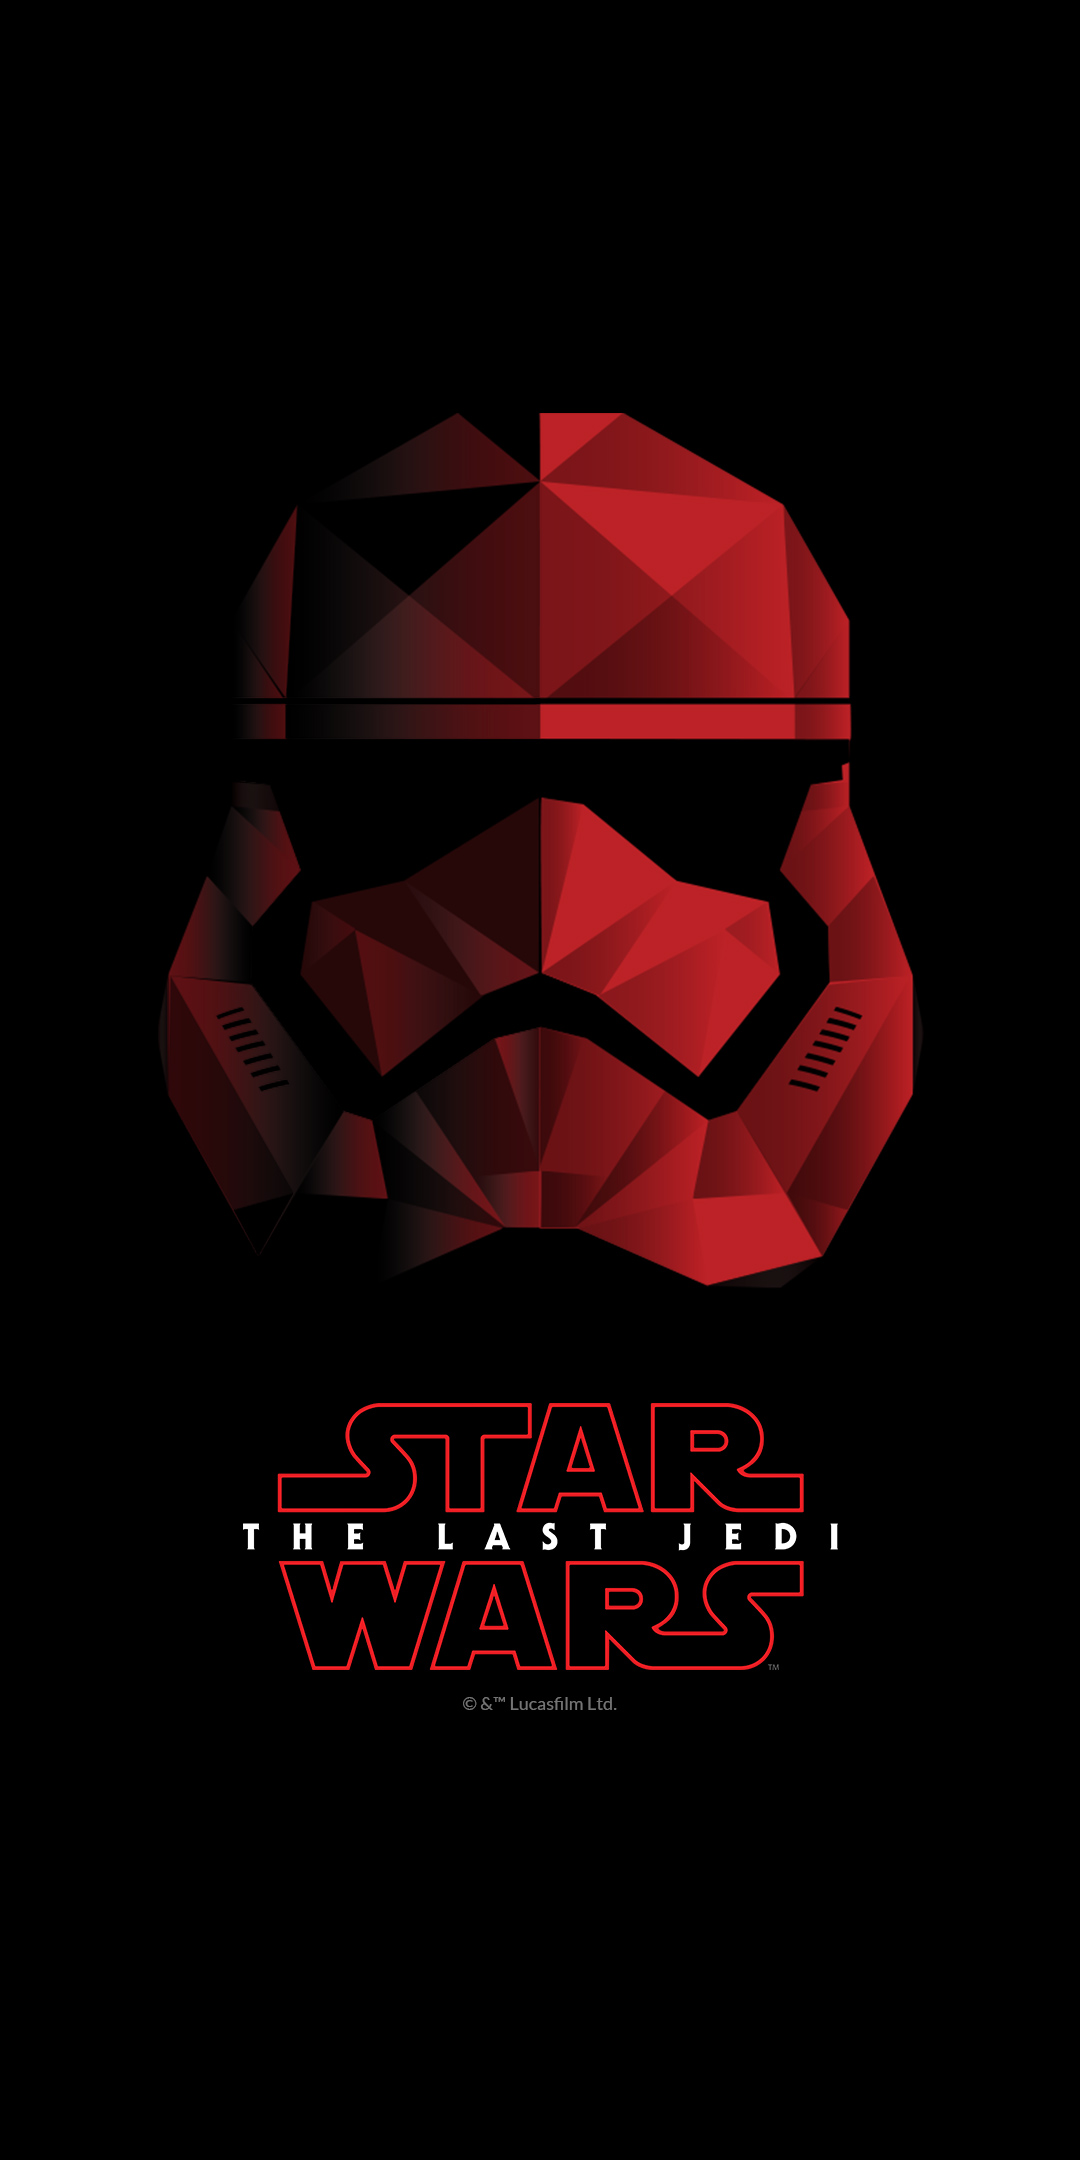 The first wallpaper shows the Star Wars: The Last Jedi logo. Next you'll find a dual-image of Kylo Ren, one in black, the other in red.